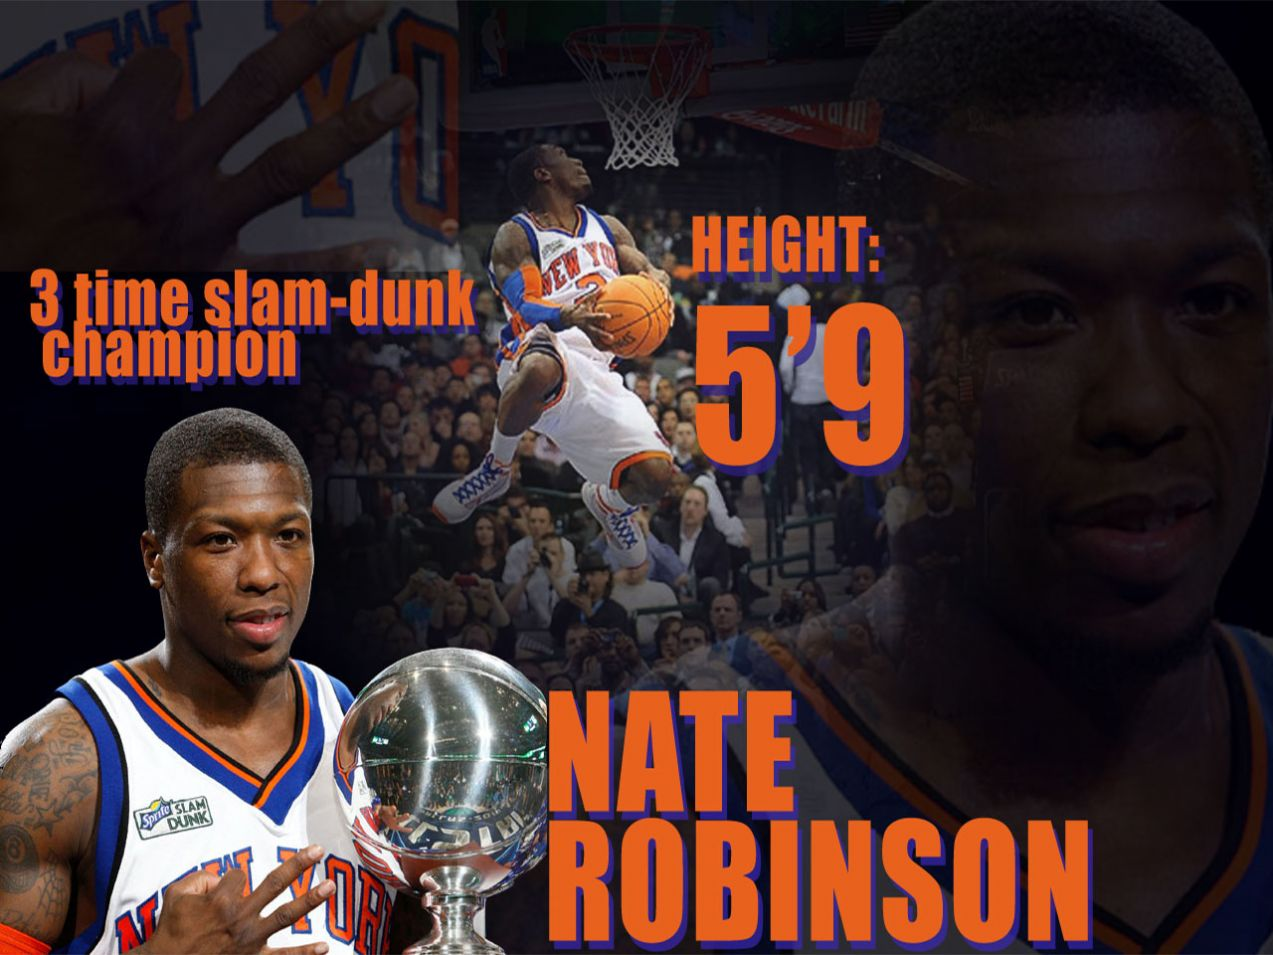 Nate Robinson Celtics Wallpaper